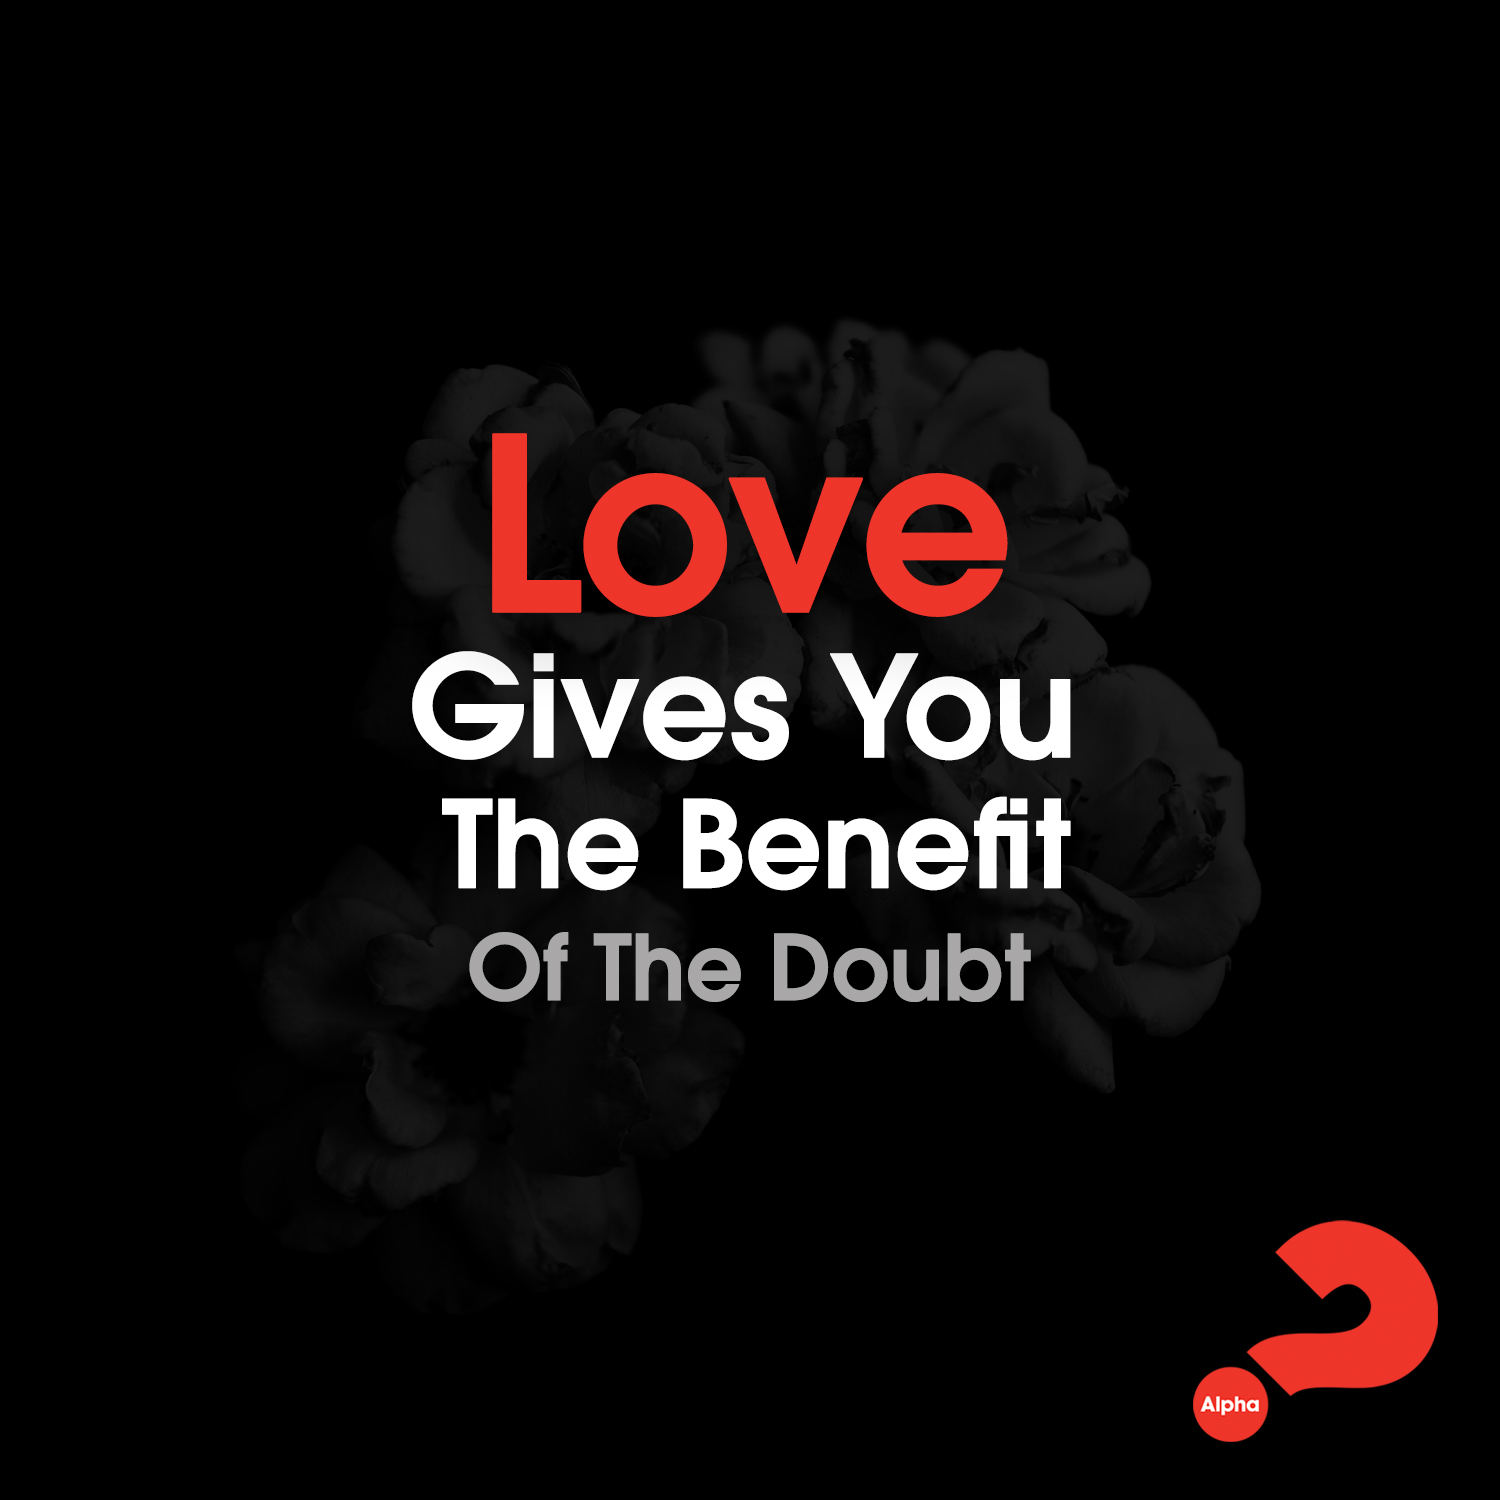 Love gives you the benefit of the doubt